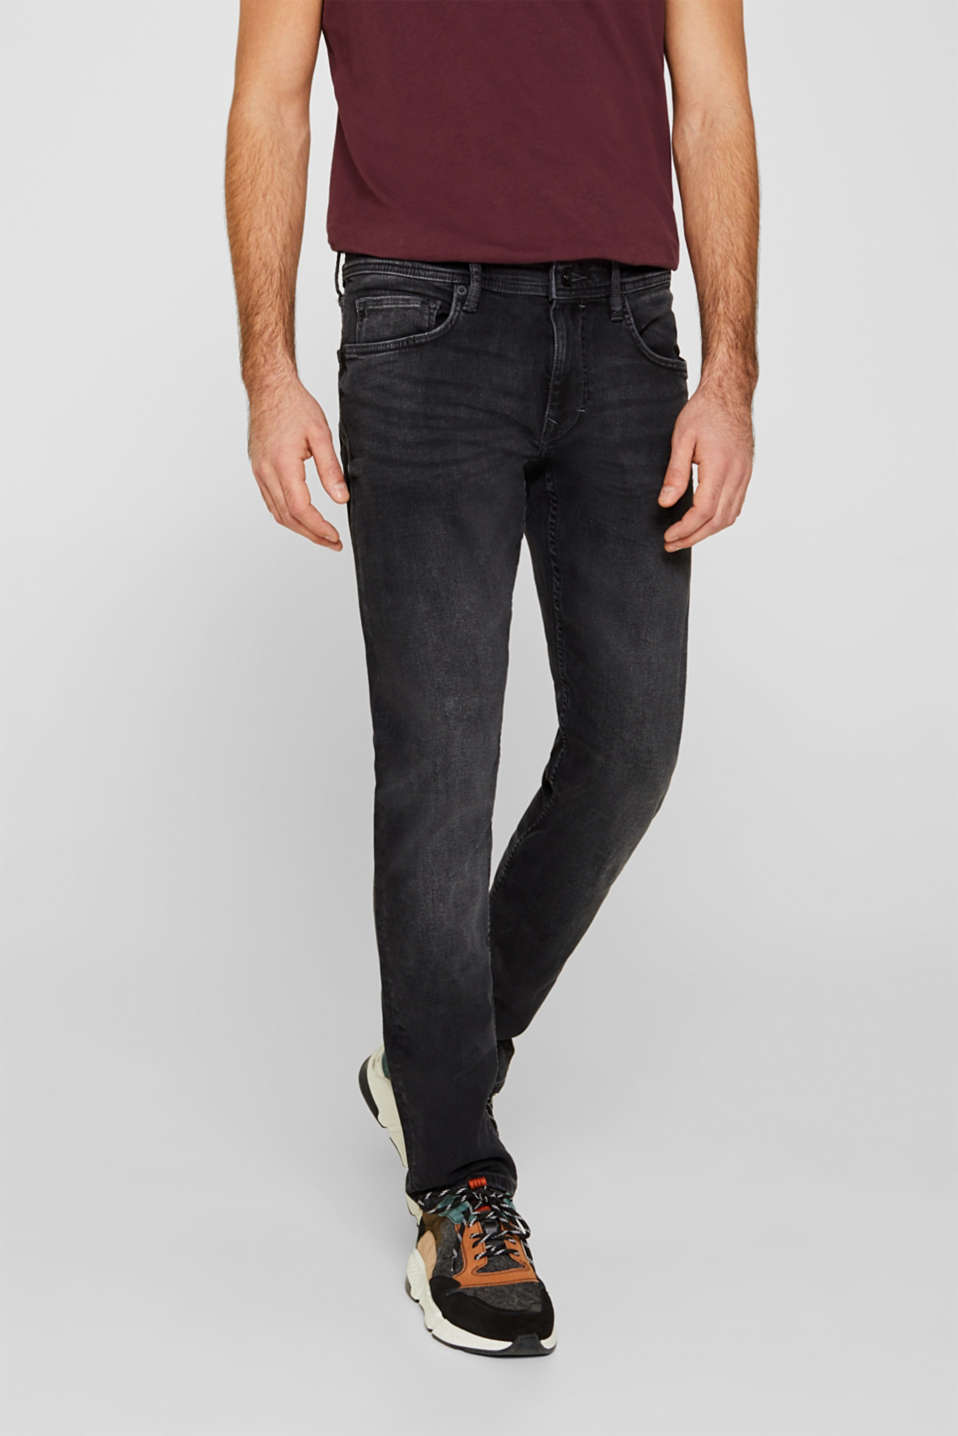 Esprit - Jeans met veel stretch en washed-outeffect